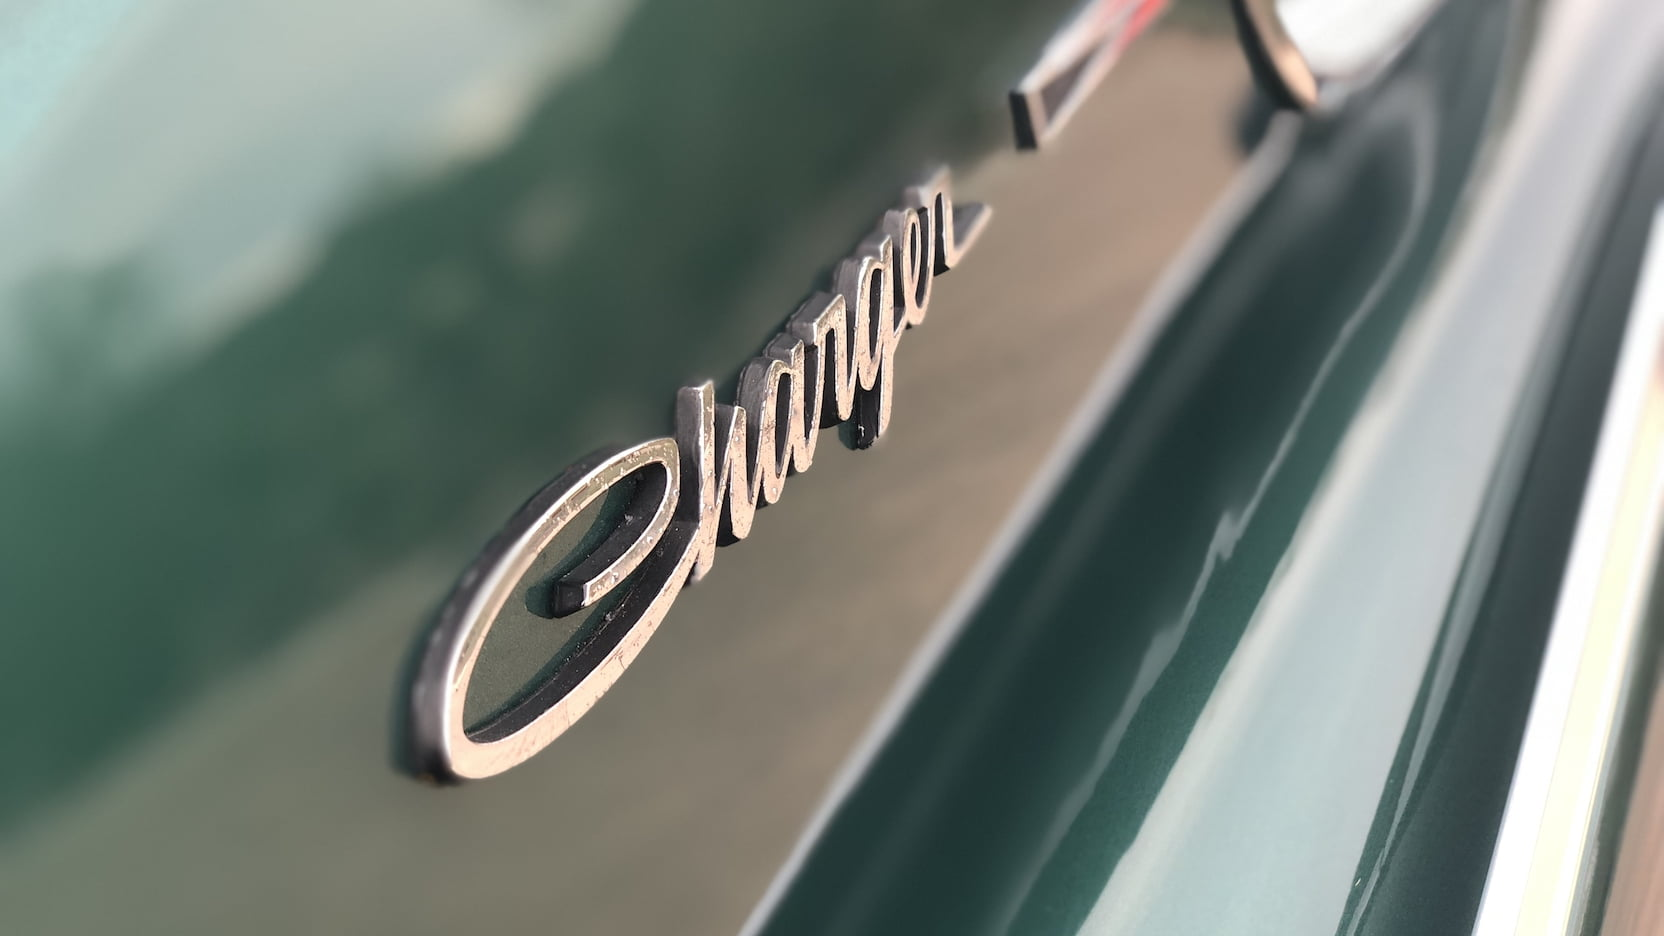 1966 Dodge Charger badge